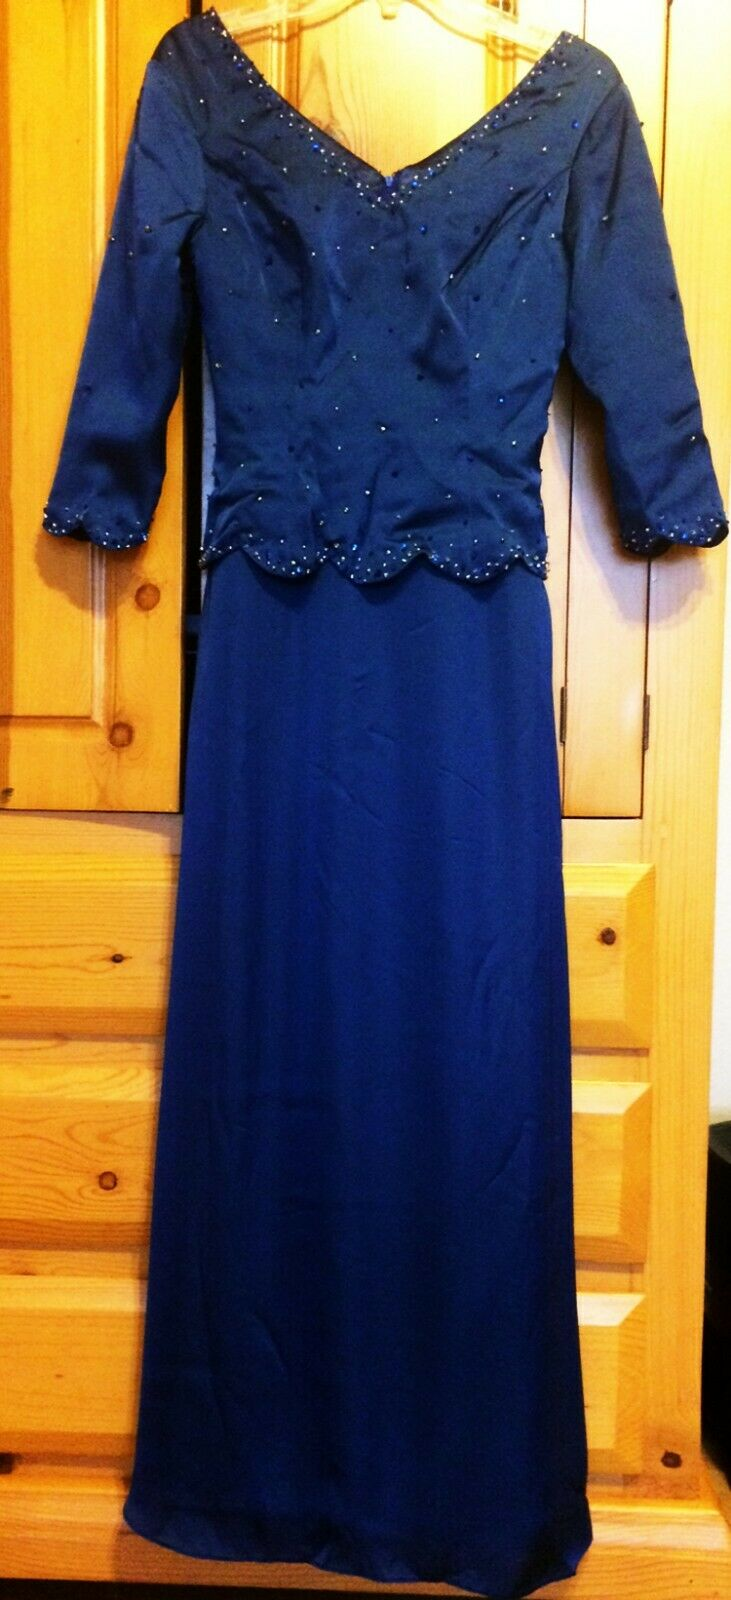 Mother of Bride Dress A-Line Formal Gown Beaded V-Neck 3/4 Sleeves Navy sz 2, 0